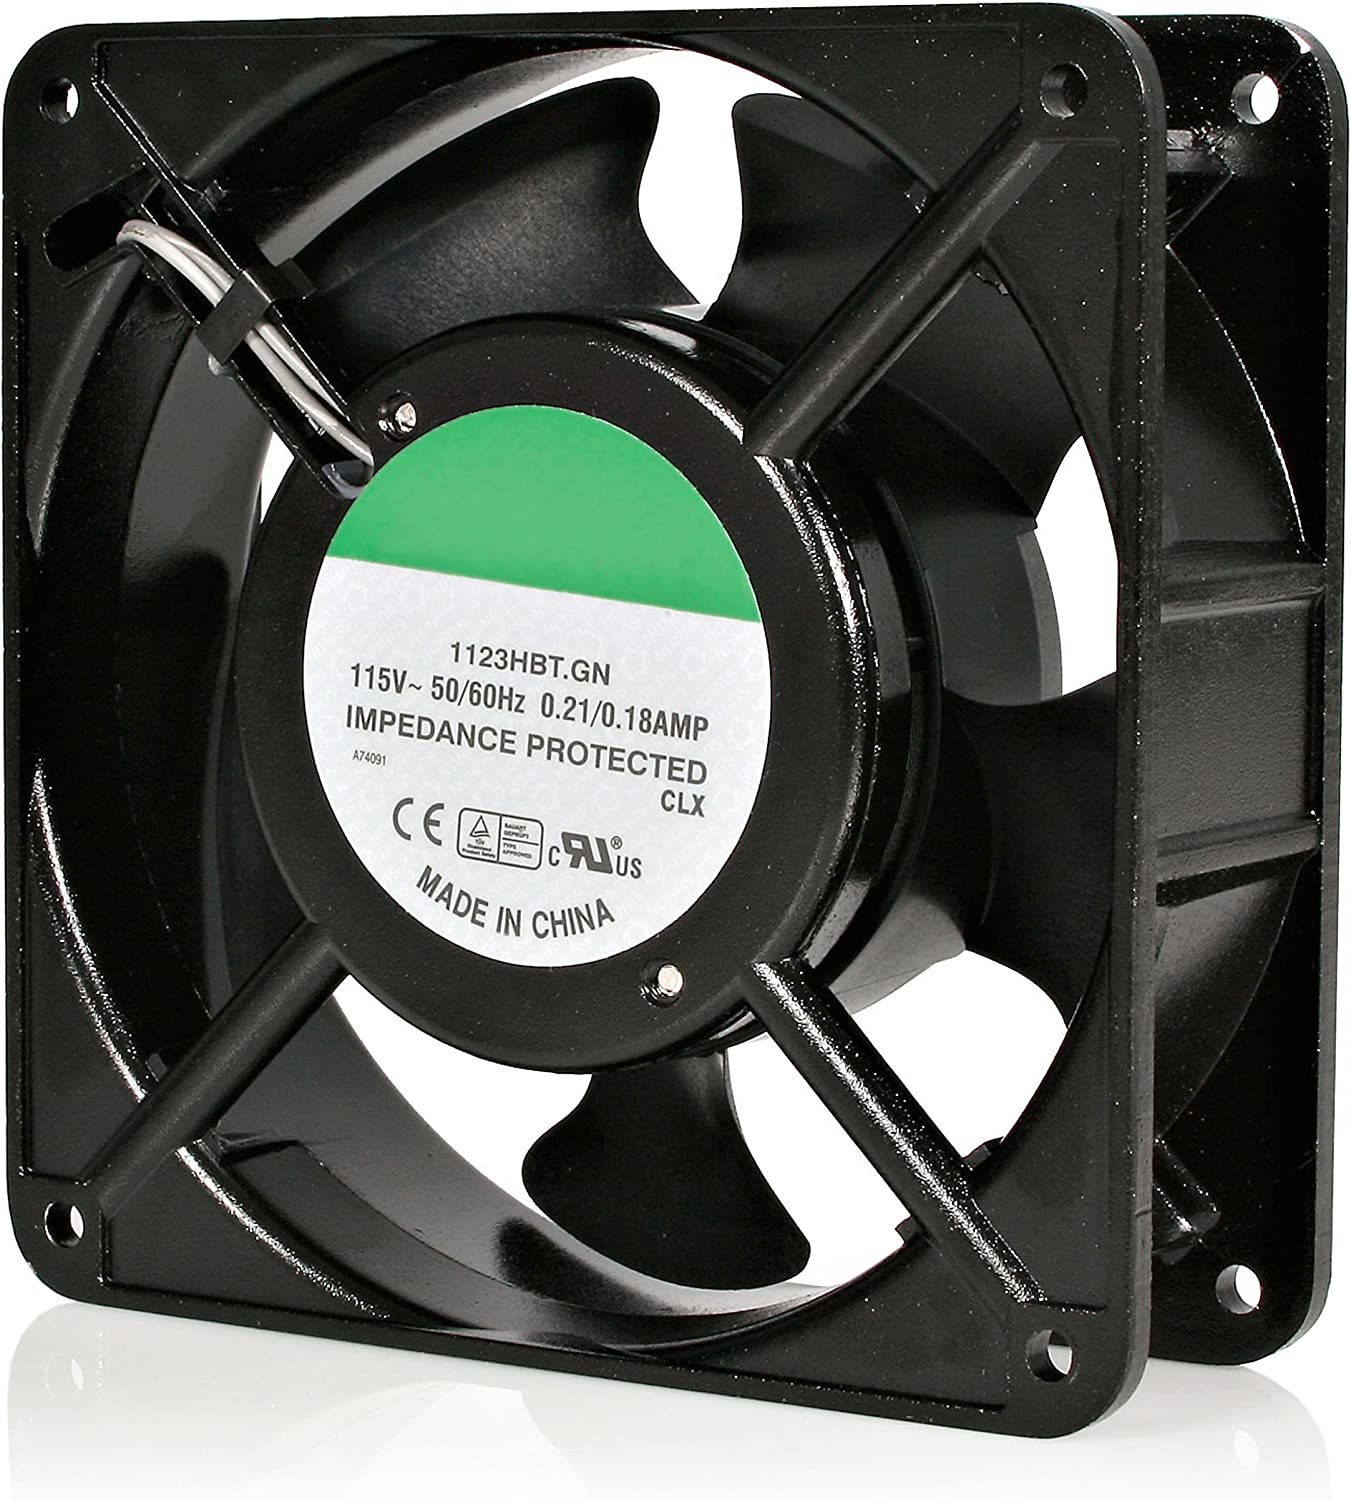 StarTech.com 120mm Axial Rack Muffin Fan for Server Cabinet - 115V - AC Cooling - Low Noise & Quiet PC Computer Case Fan (ACFANKIT12)